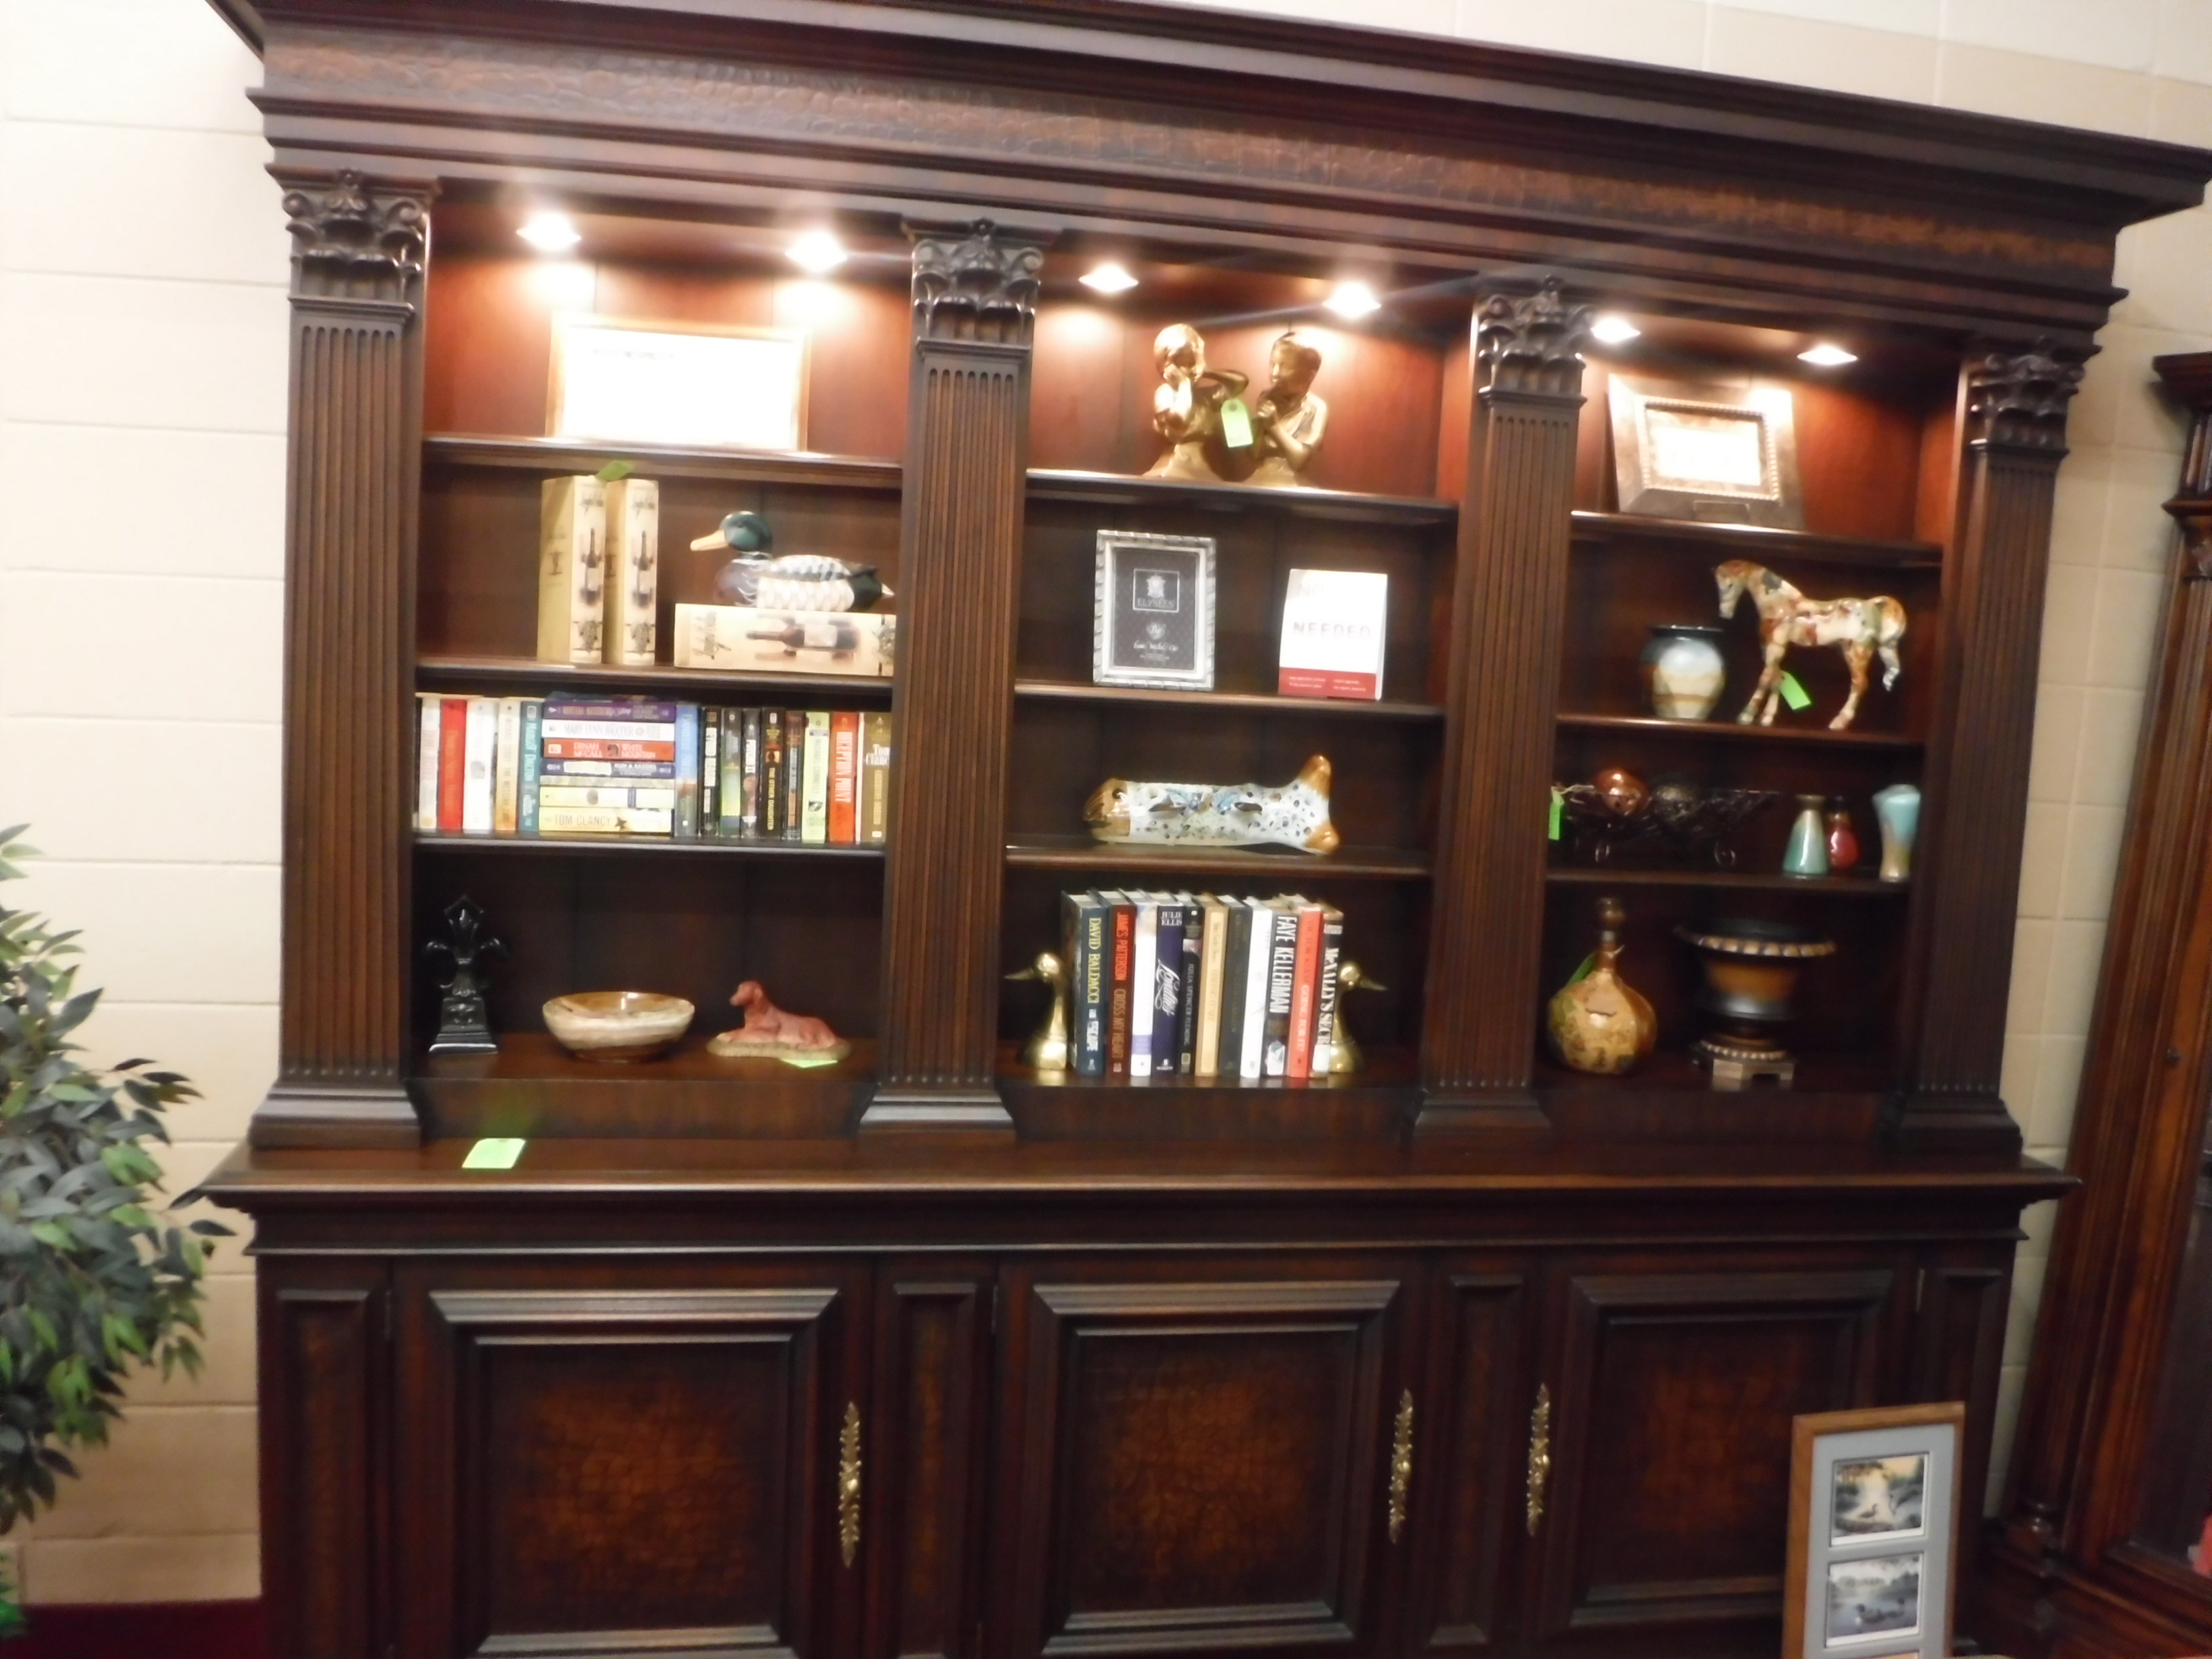 sold lighted cabinet vintage china new bookcases breakfront bookcase antique cabinets desk travis english court drexel or mahogany